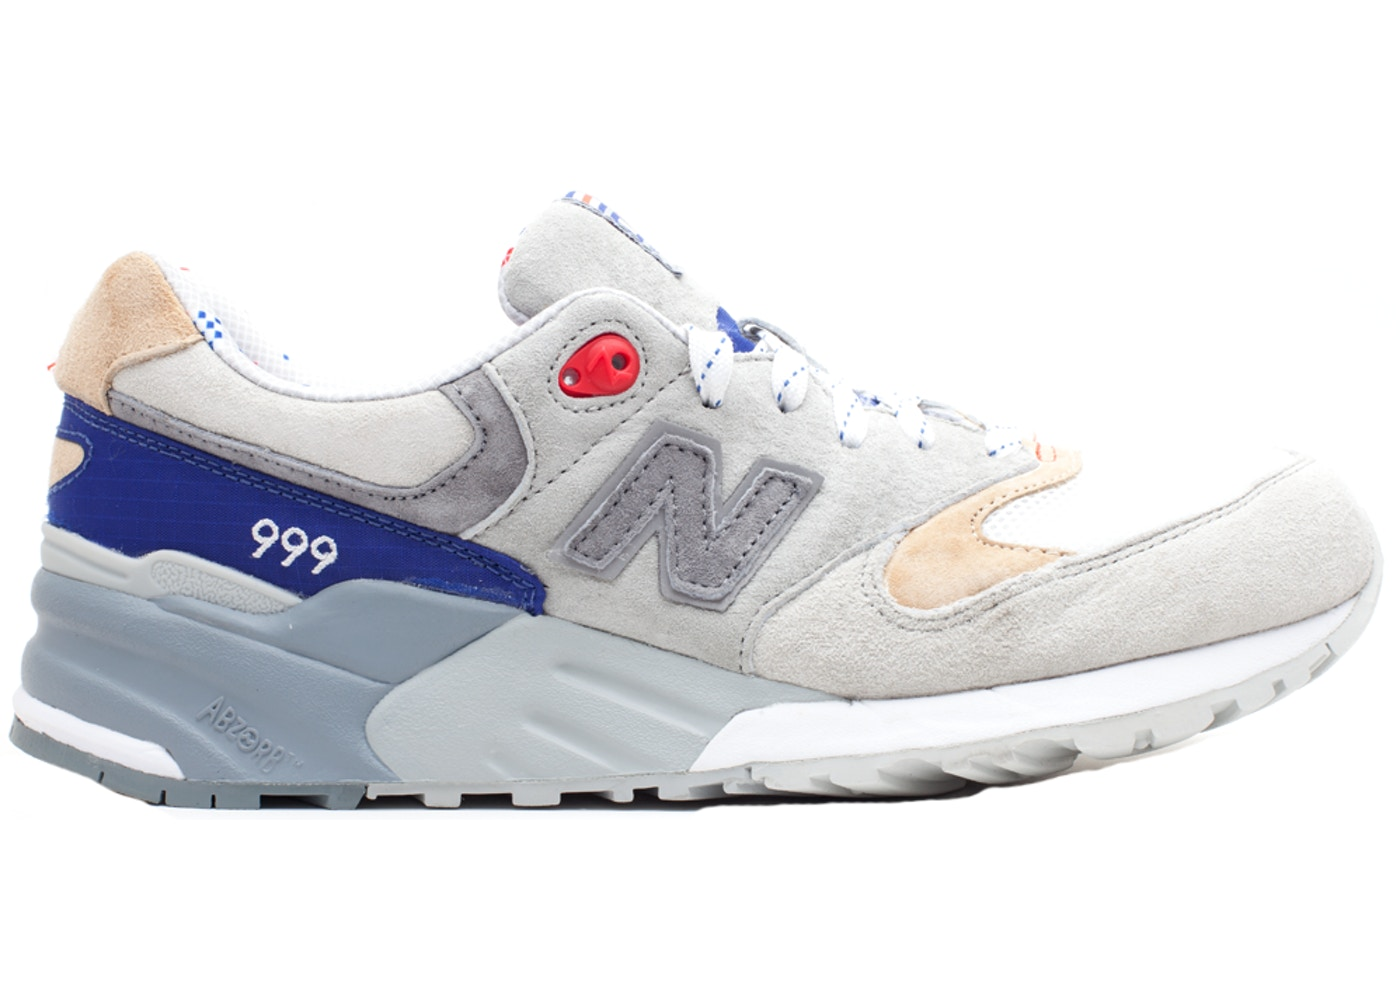 finest selection 67aec 01bee New Balance 999 Concepts